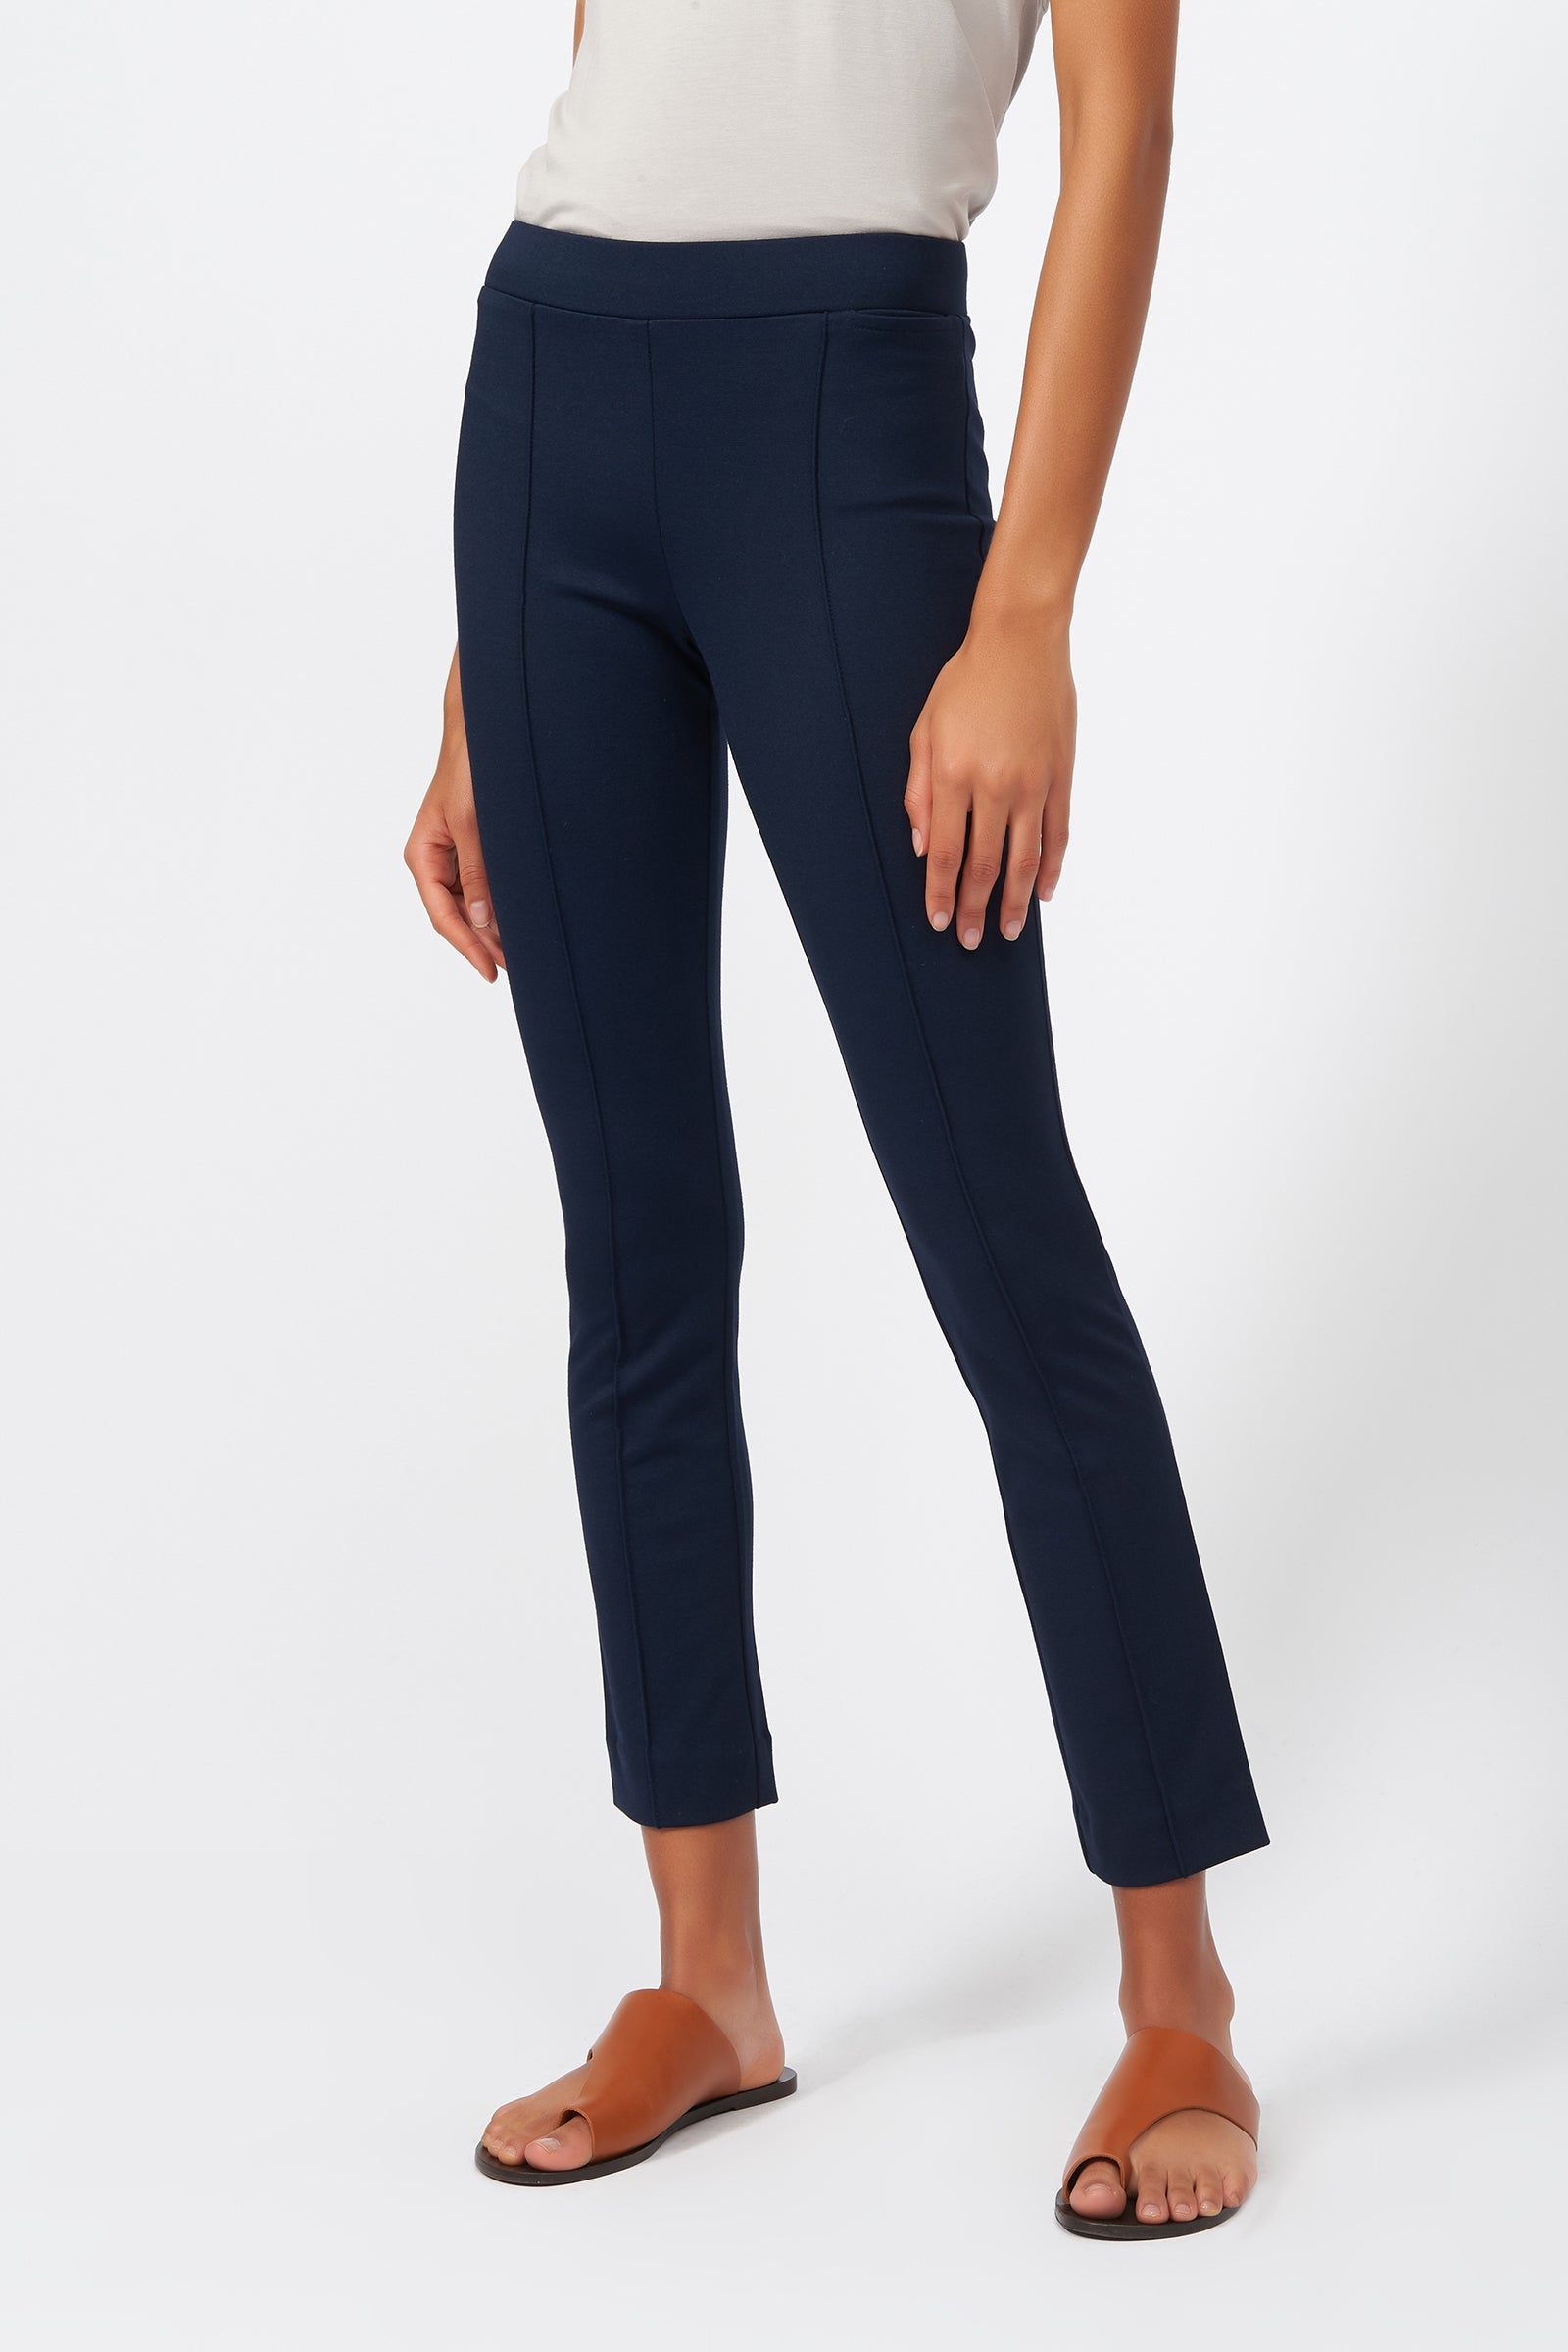 Kal Rieman Pintuck Ponte Ankle Pant in Navy on Model Front View